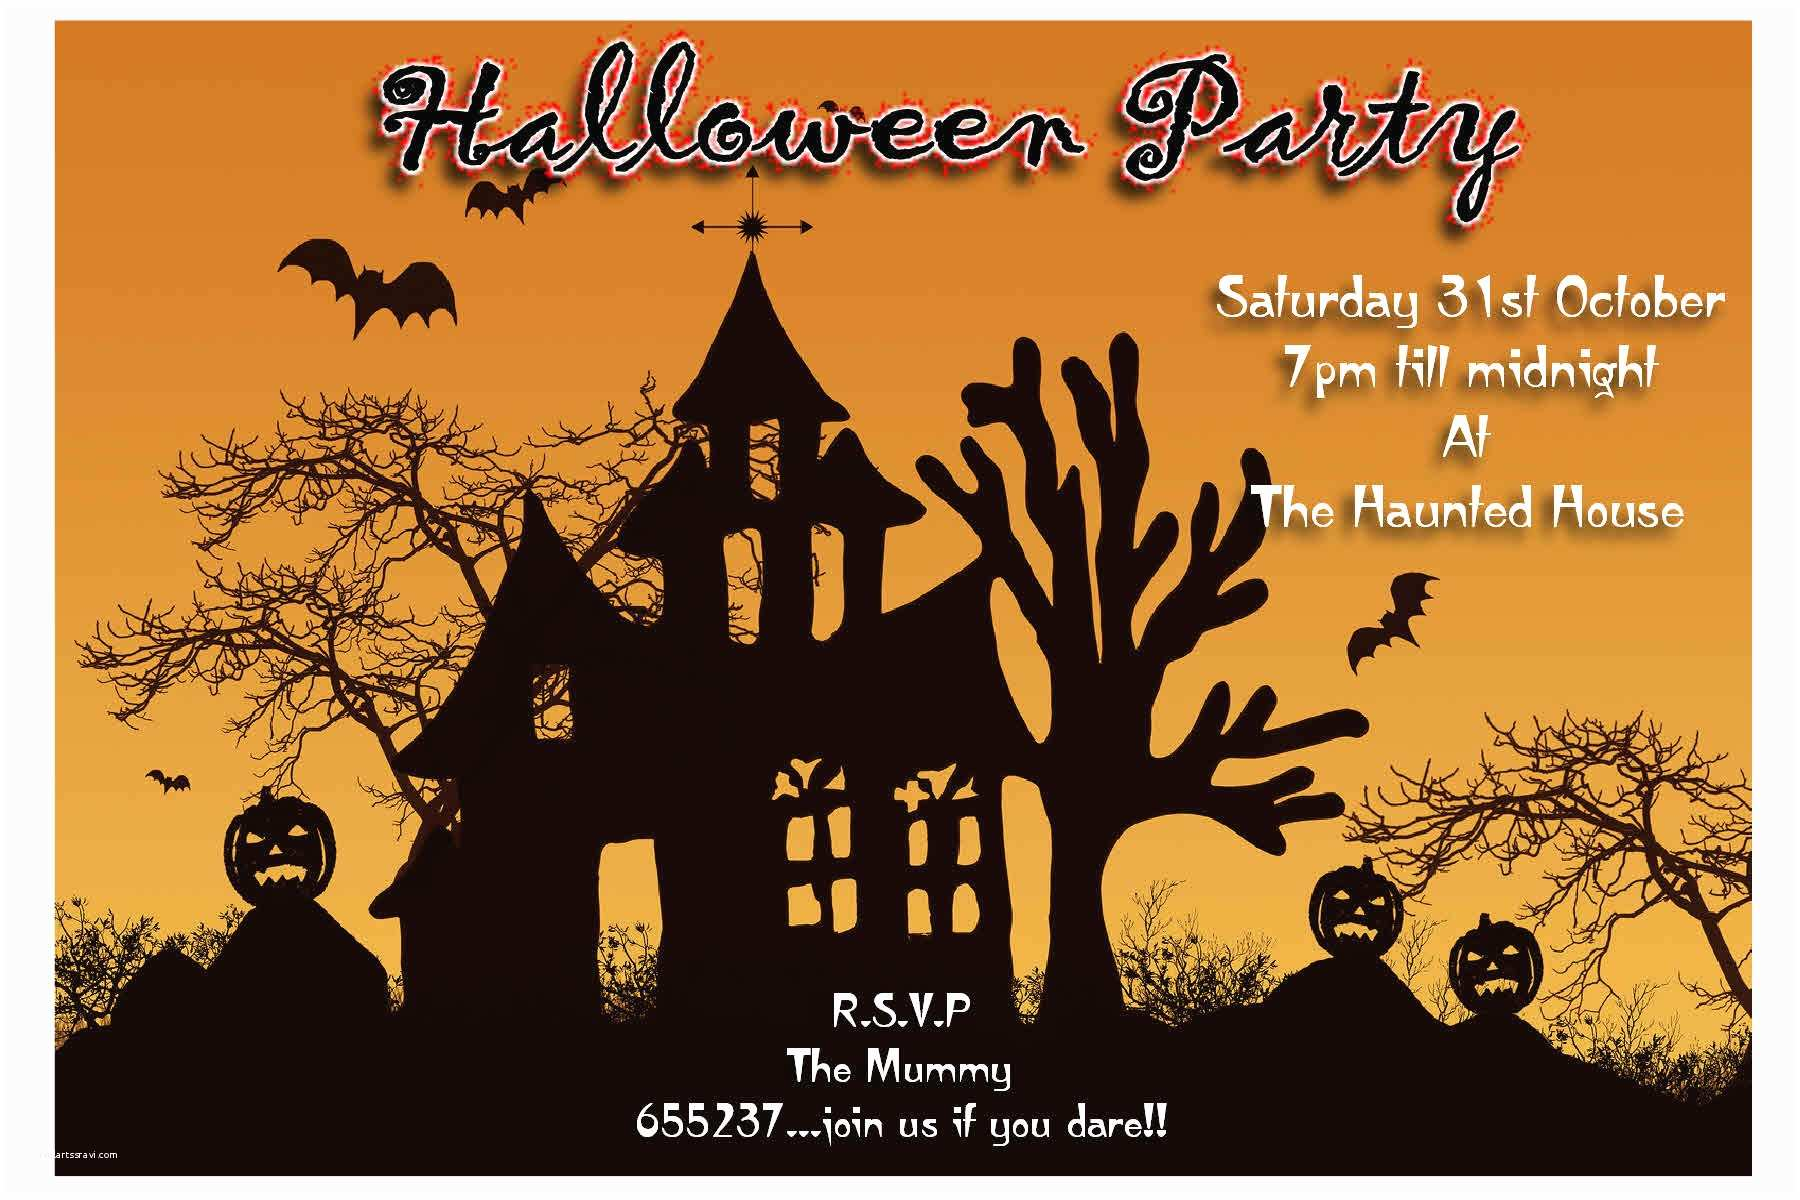 Free Halloween Party Invitations Halloween Party Invitation Cards – Festival Collections